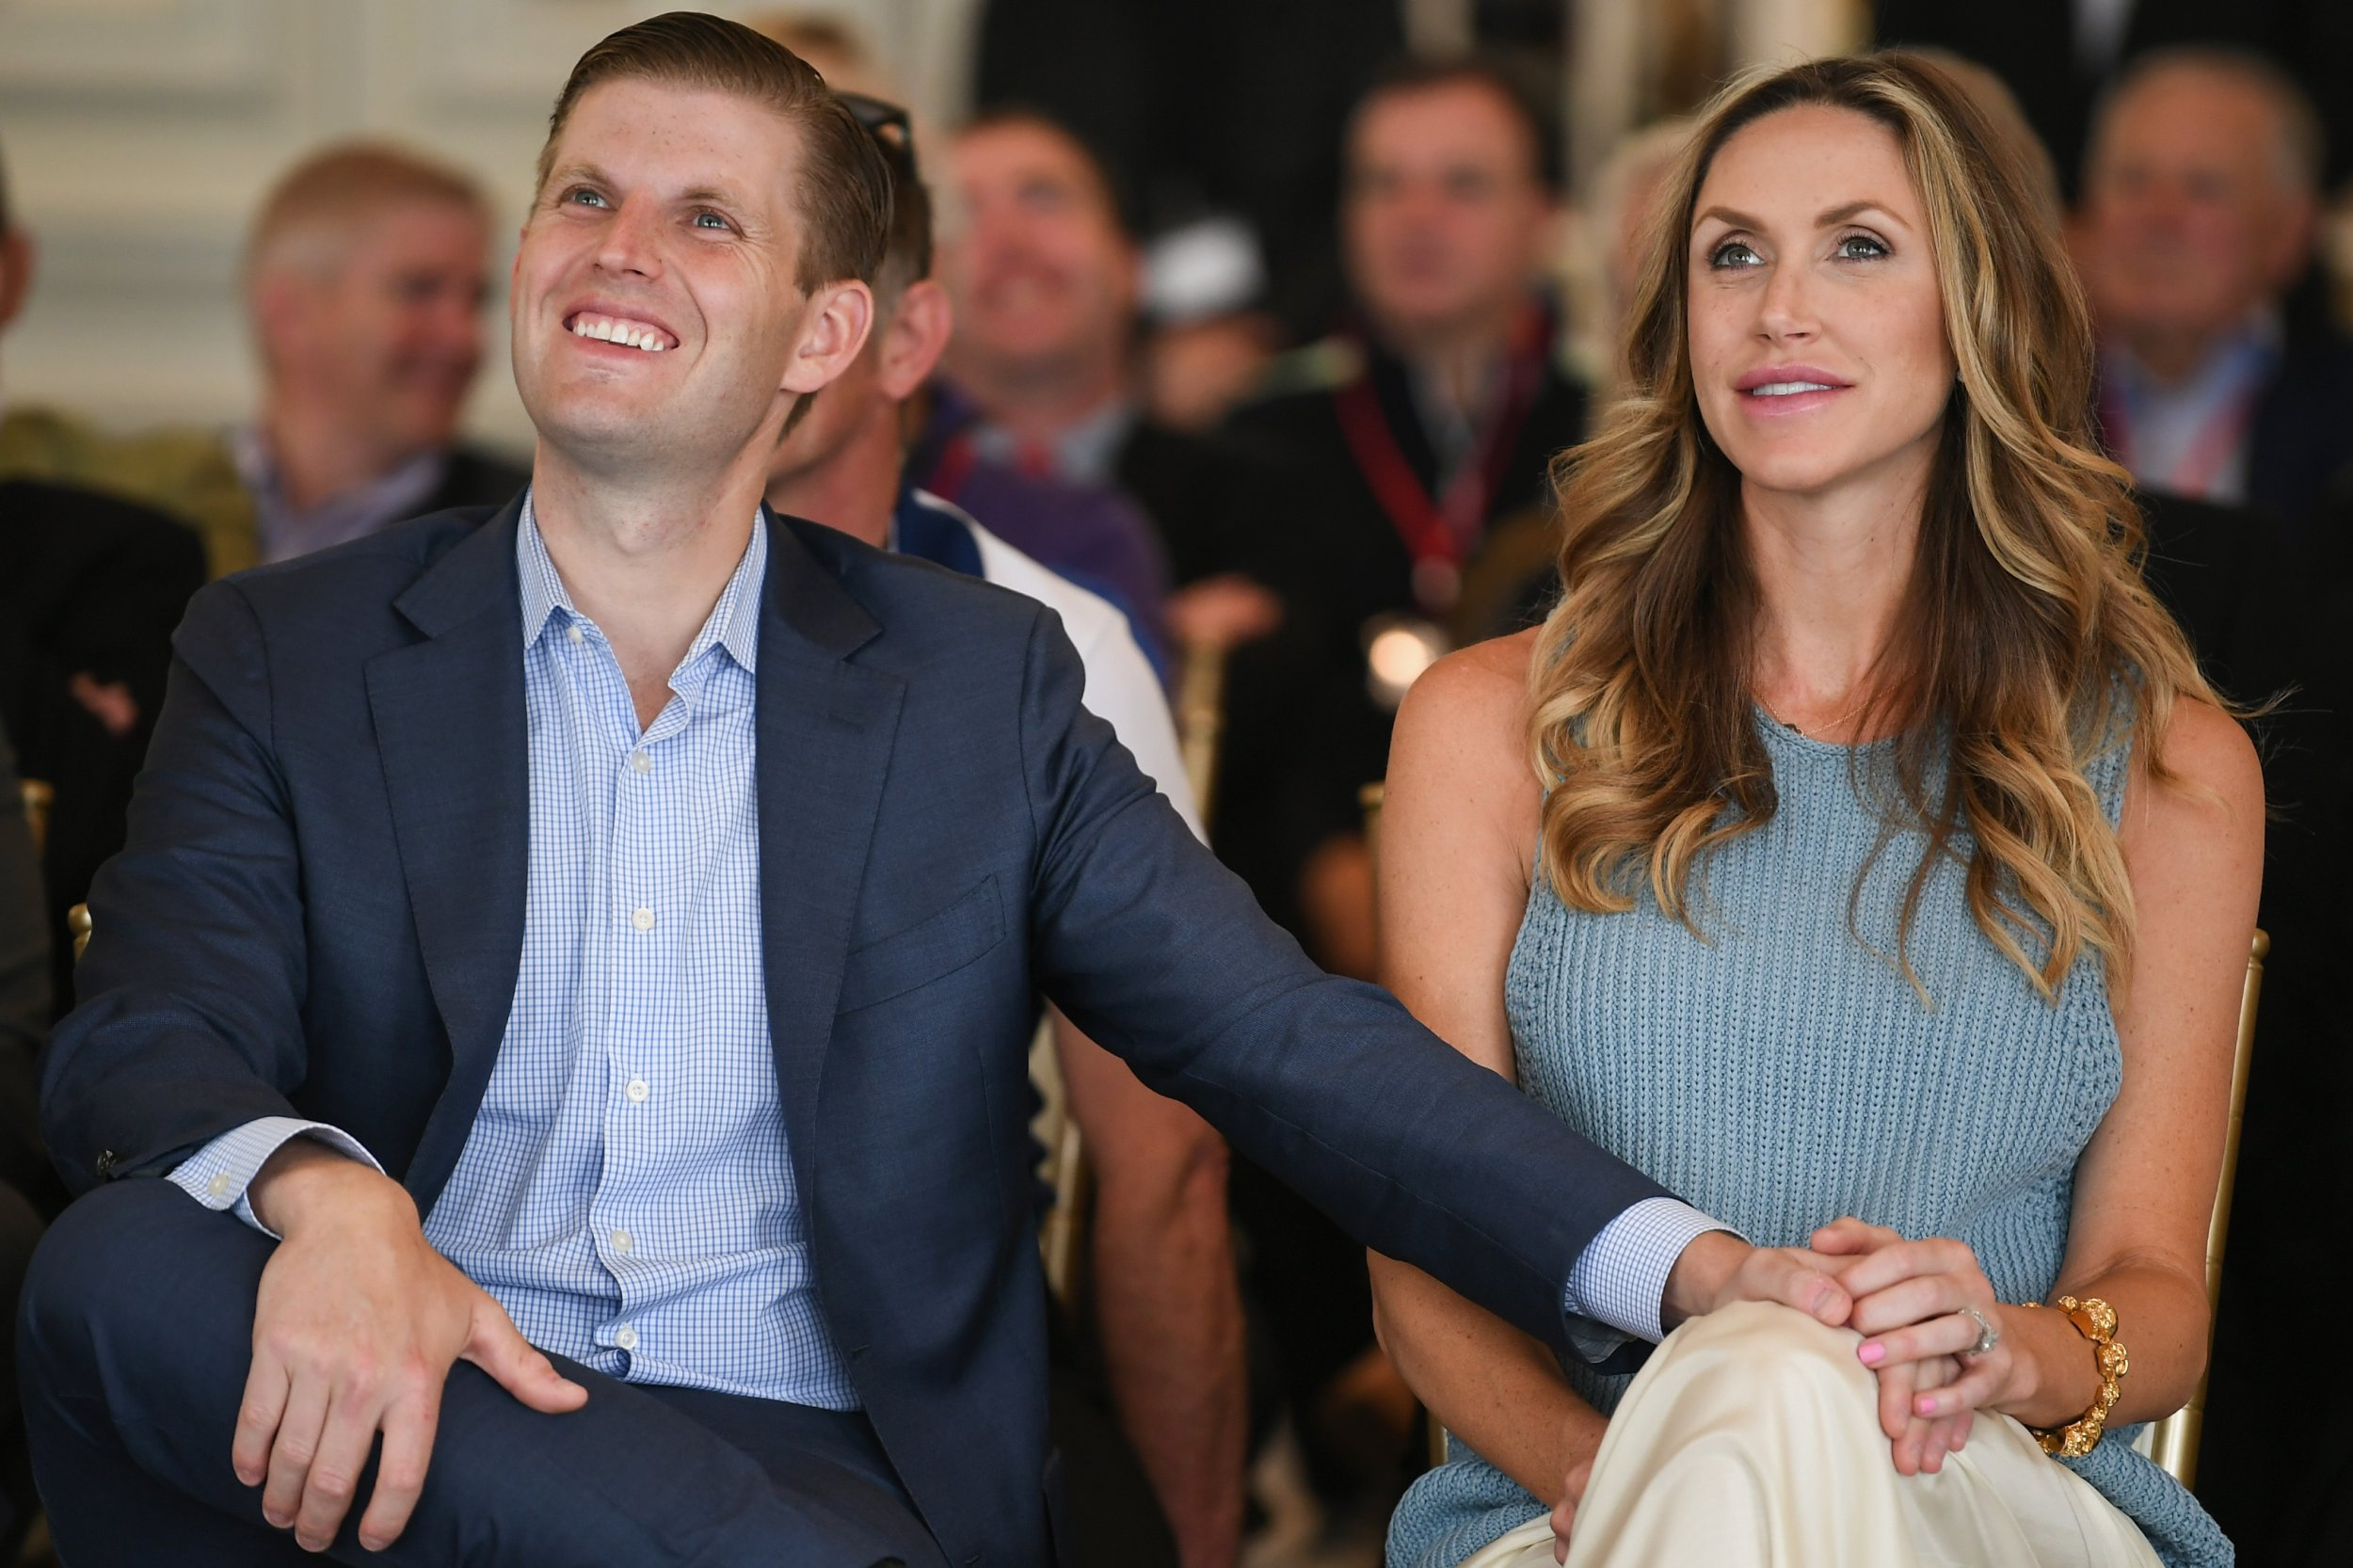 The Trump Family Welcomes Eric Luke Trump On Of Course